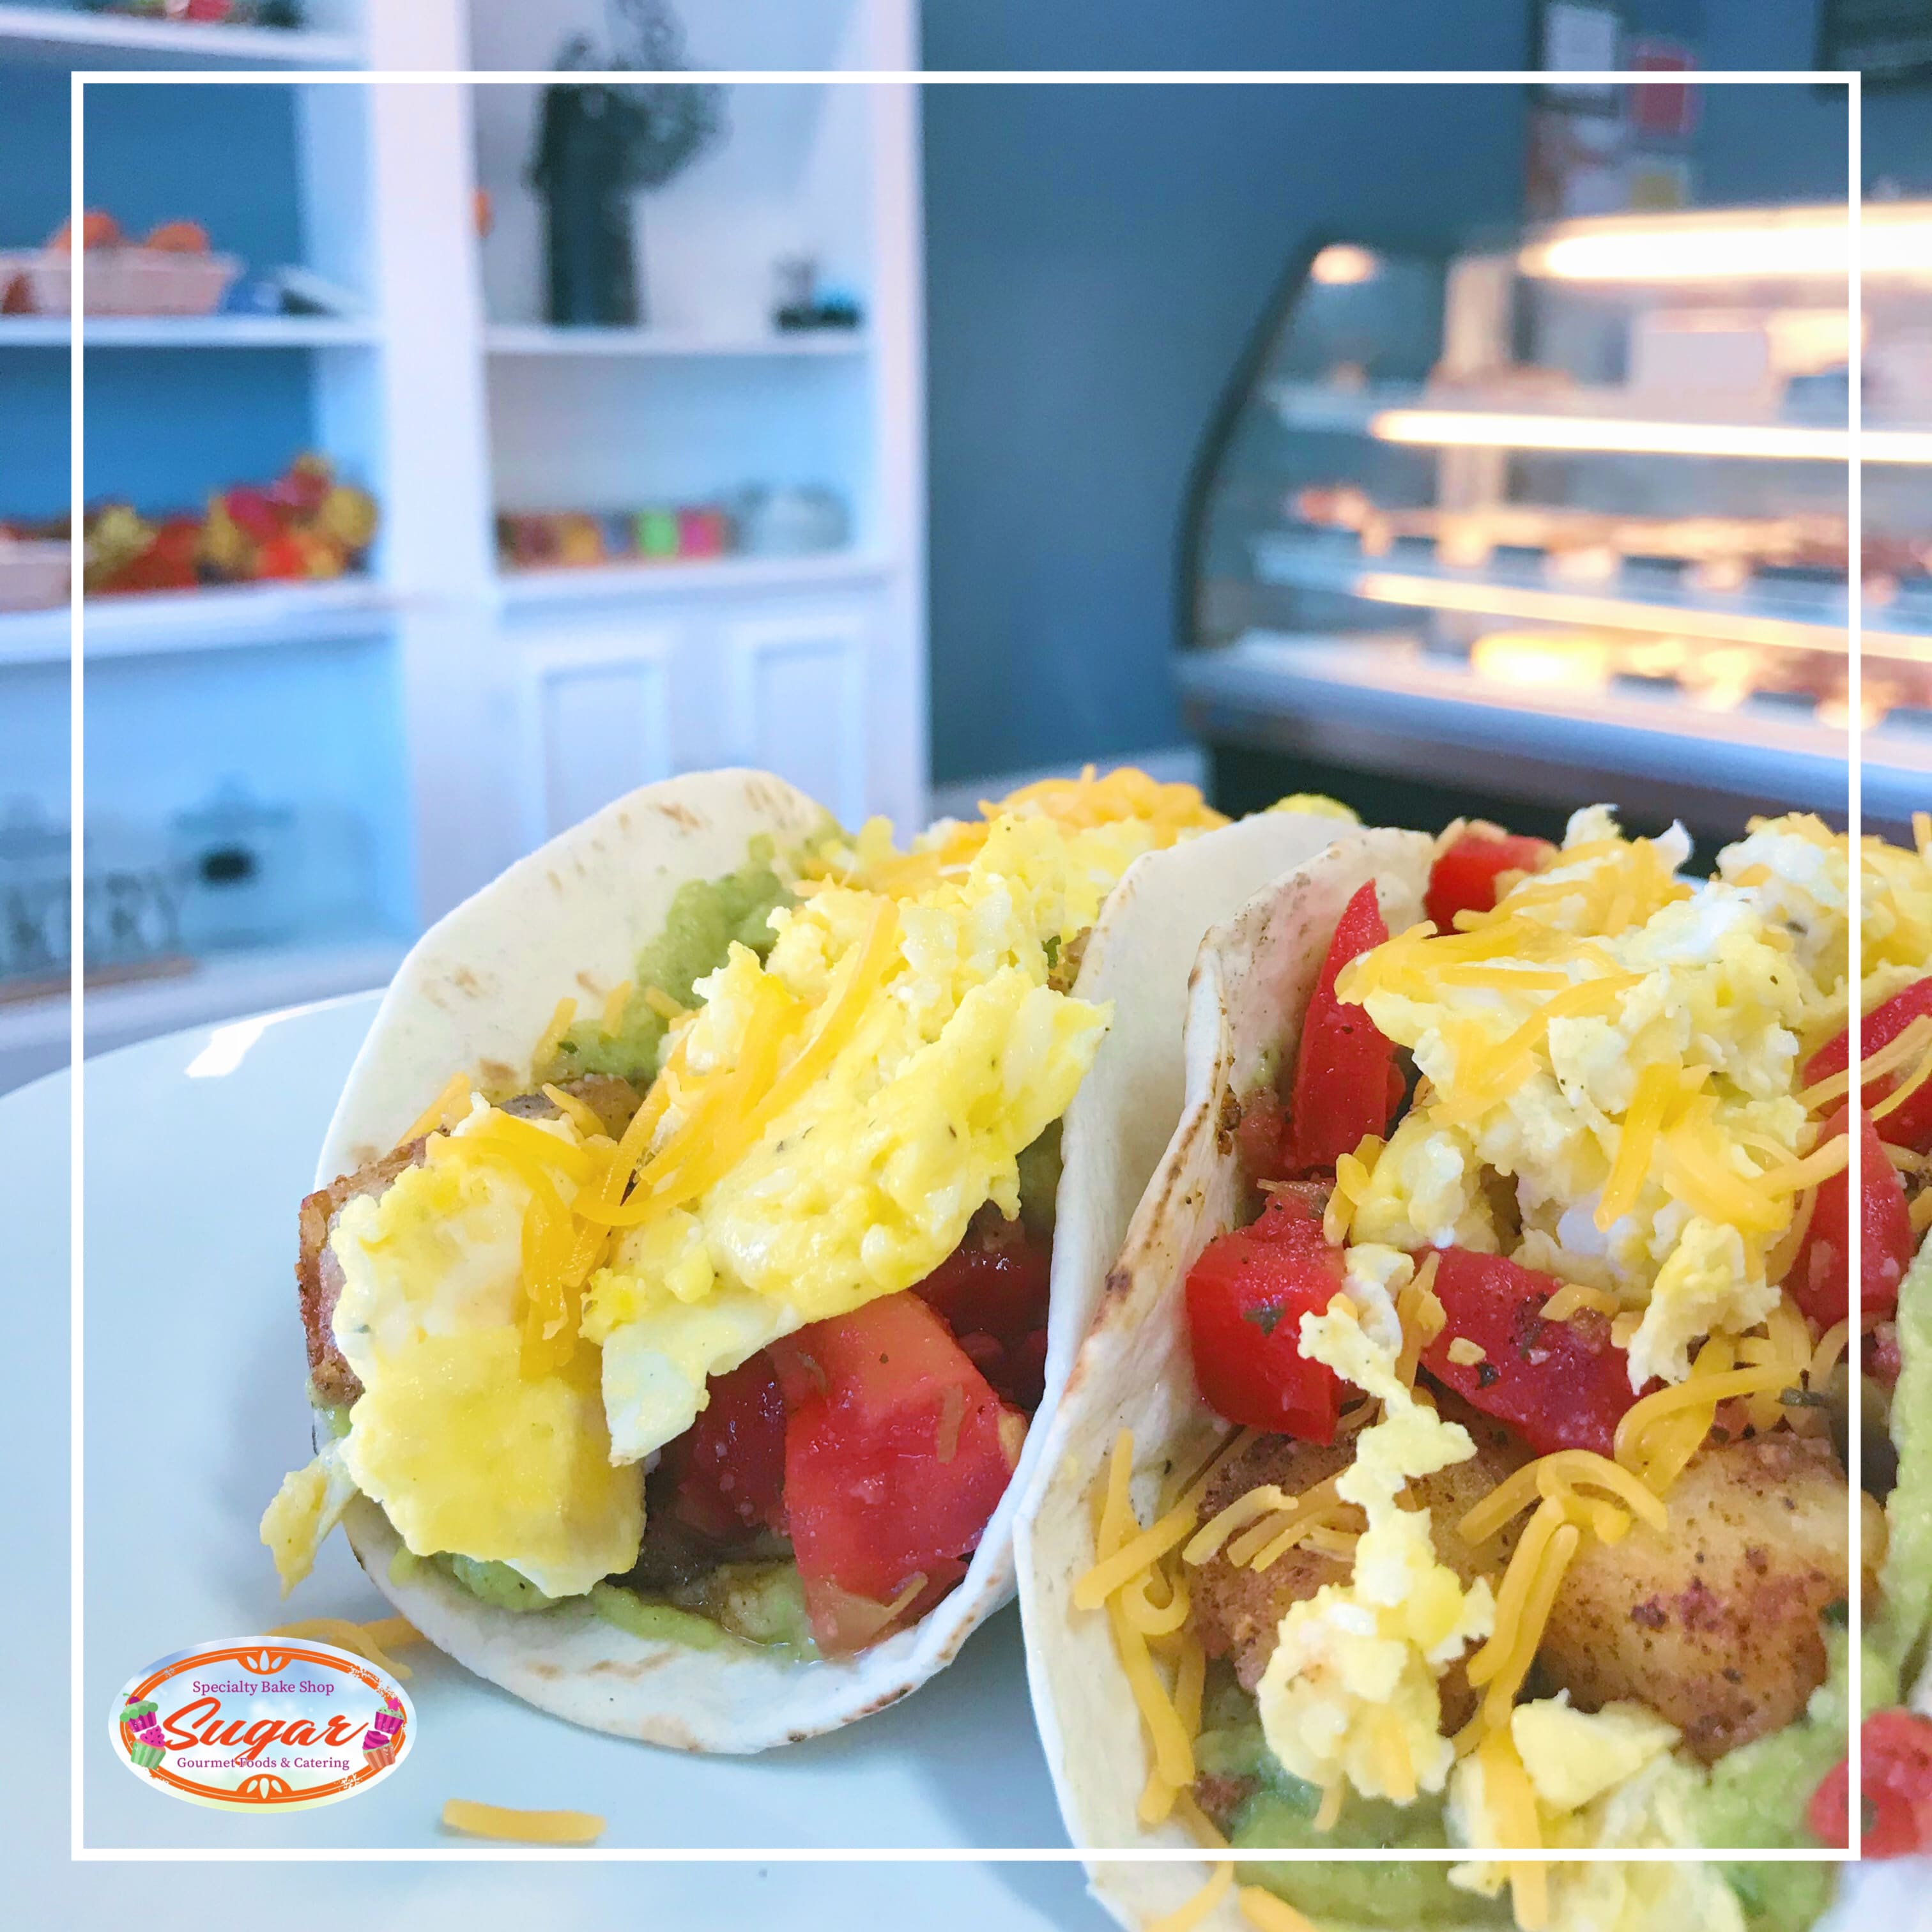 NEW! Breakfast Menu at Sugar Bake Shop